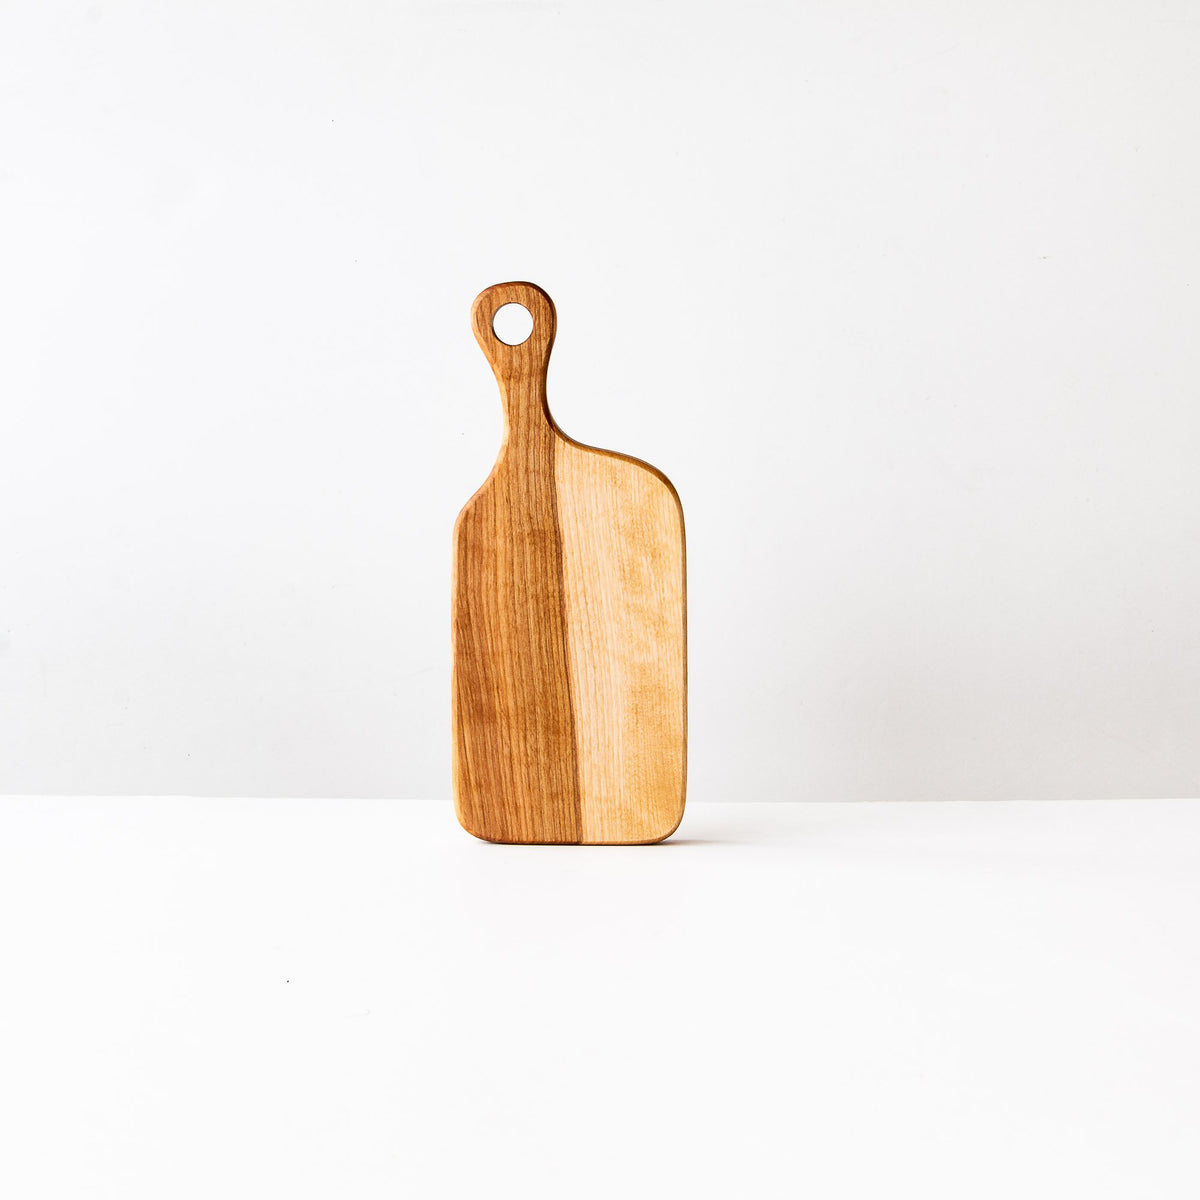 Muskoka N°1 - Handmade Wooden Board in Birch - Sold by Chic & Basta